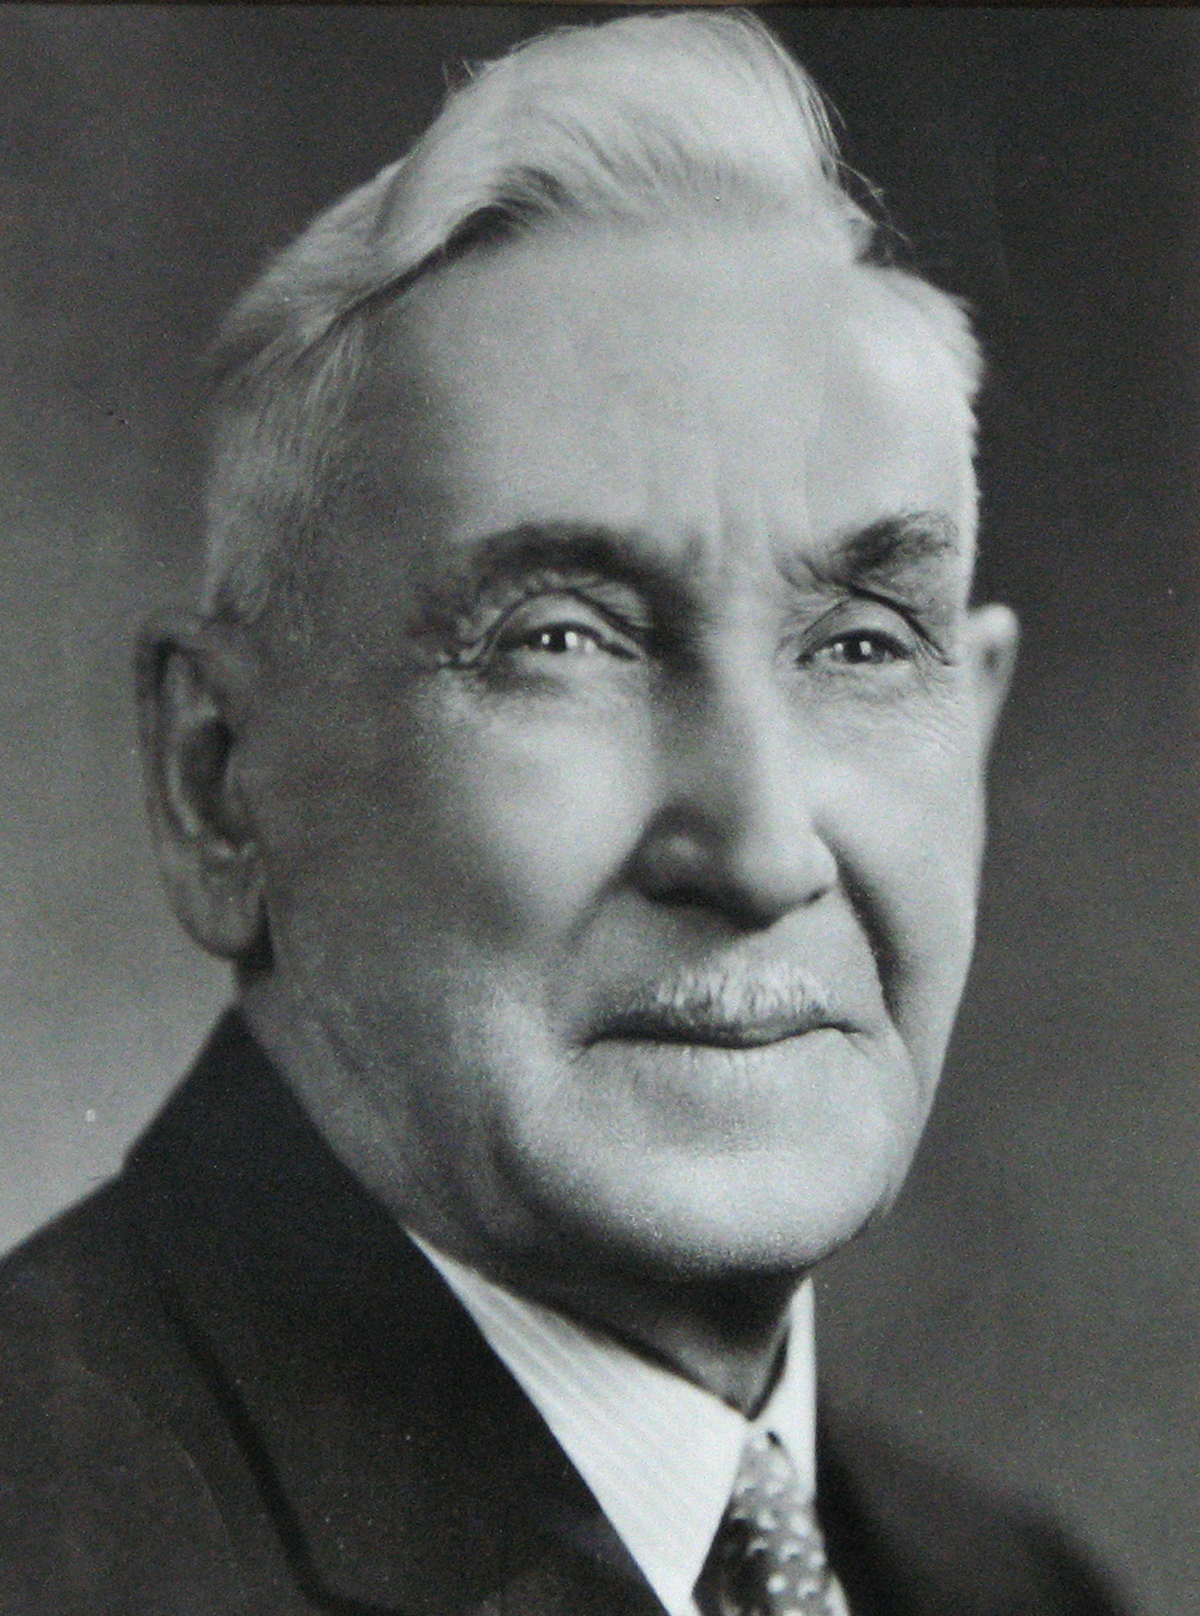 Mayor Donald Fletcher